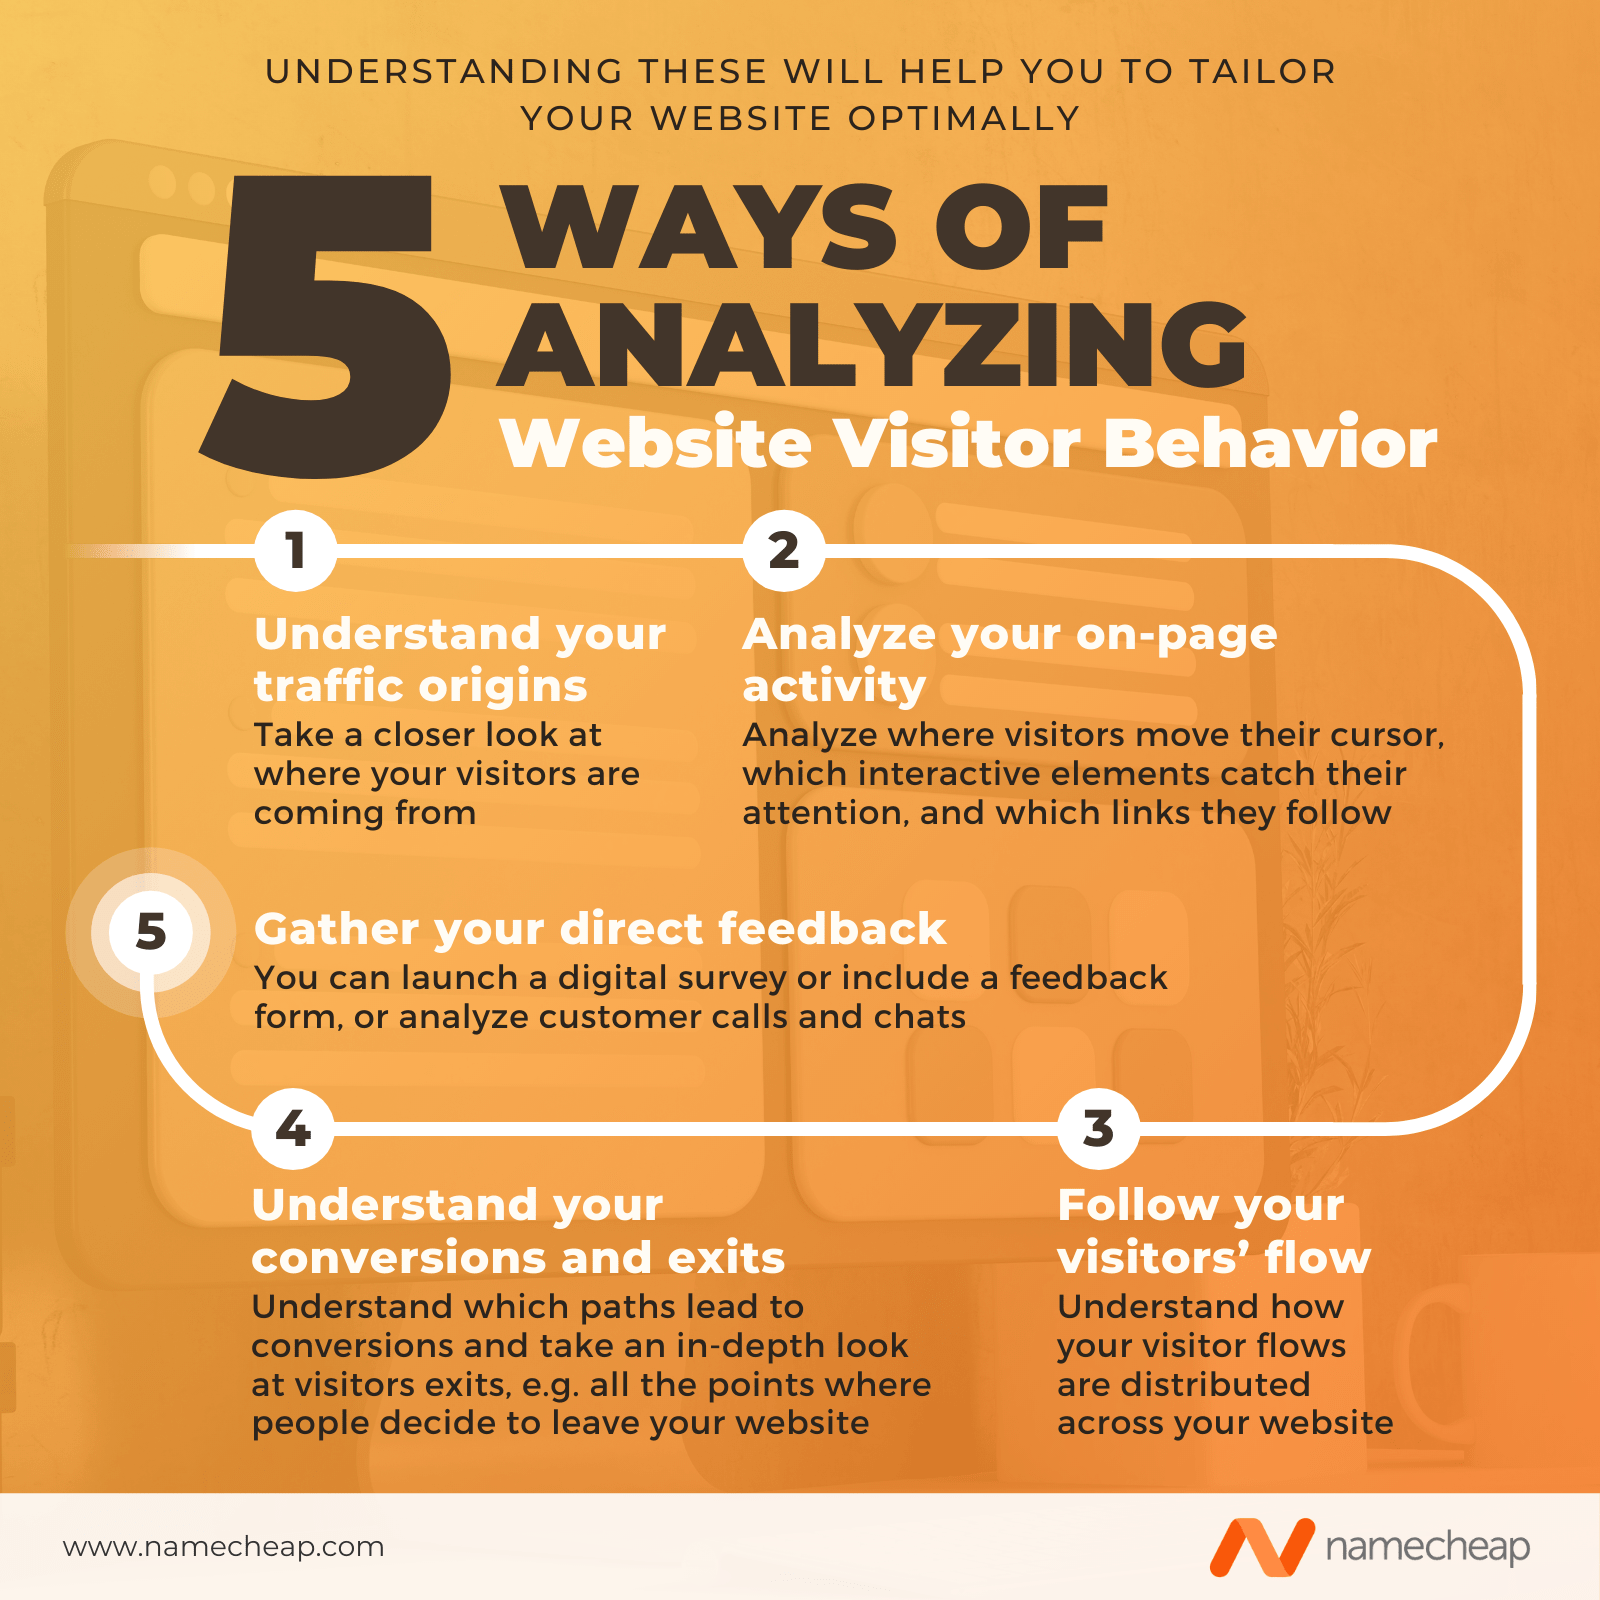 Infographic showing 5 ways of analyzing website visitor behavior.